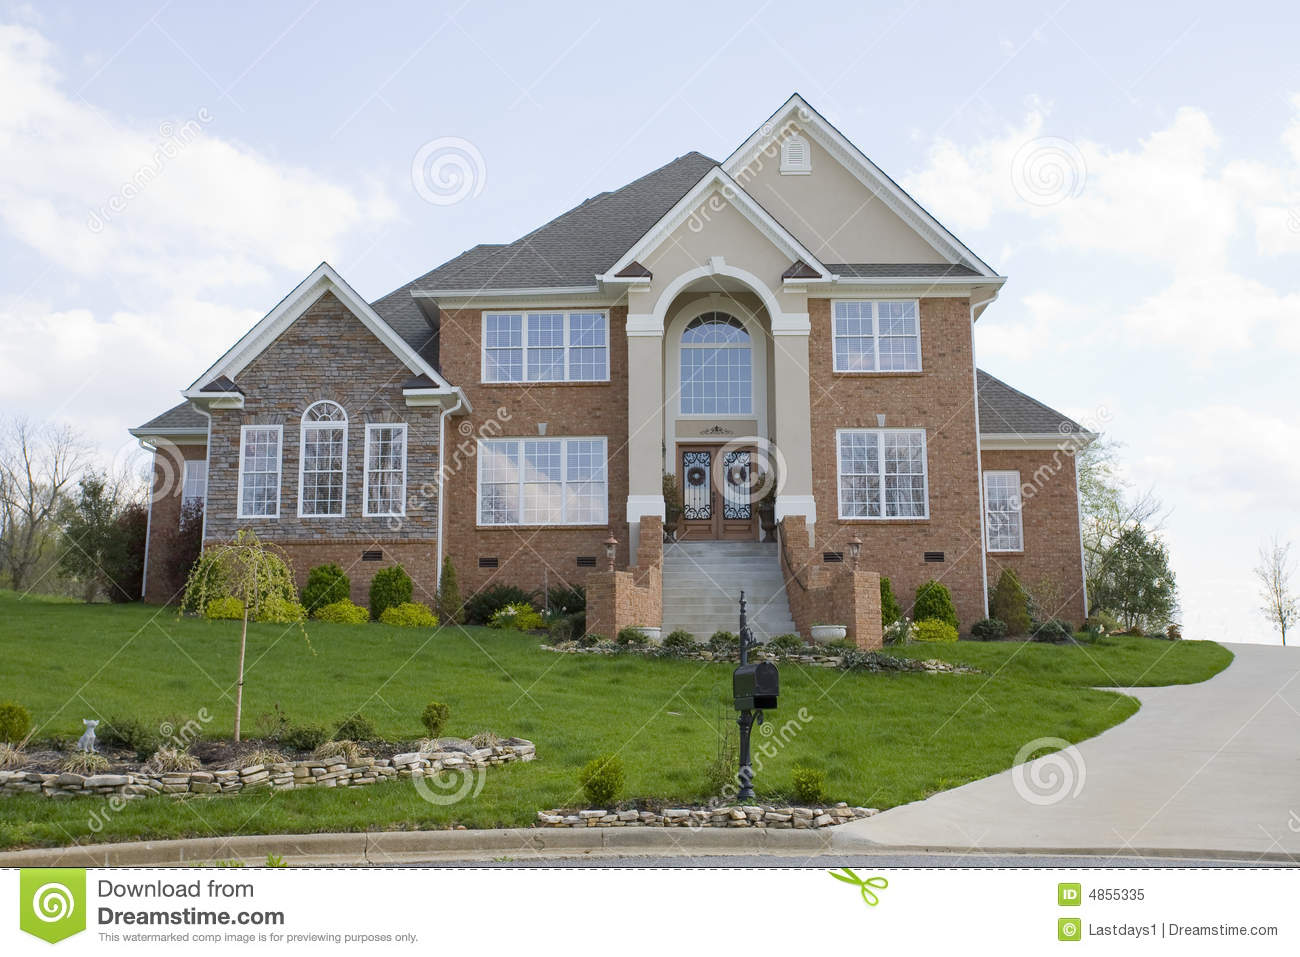 Luxury new homes for sale royalty free stock photo image for Free luxury home images